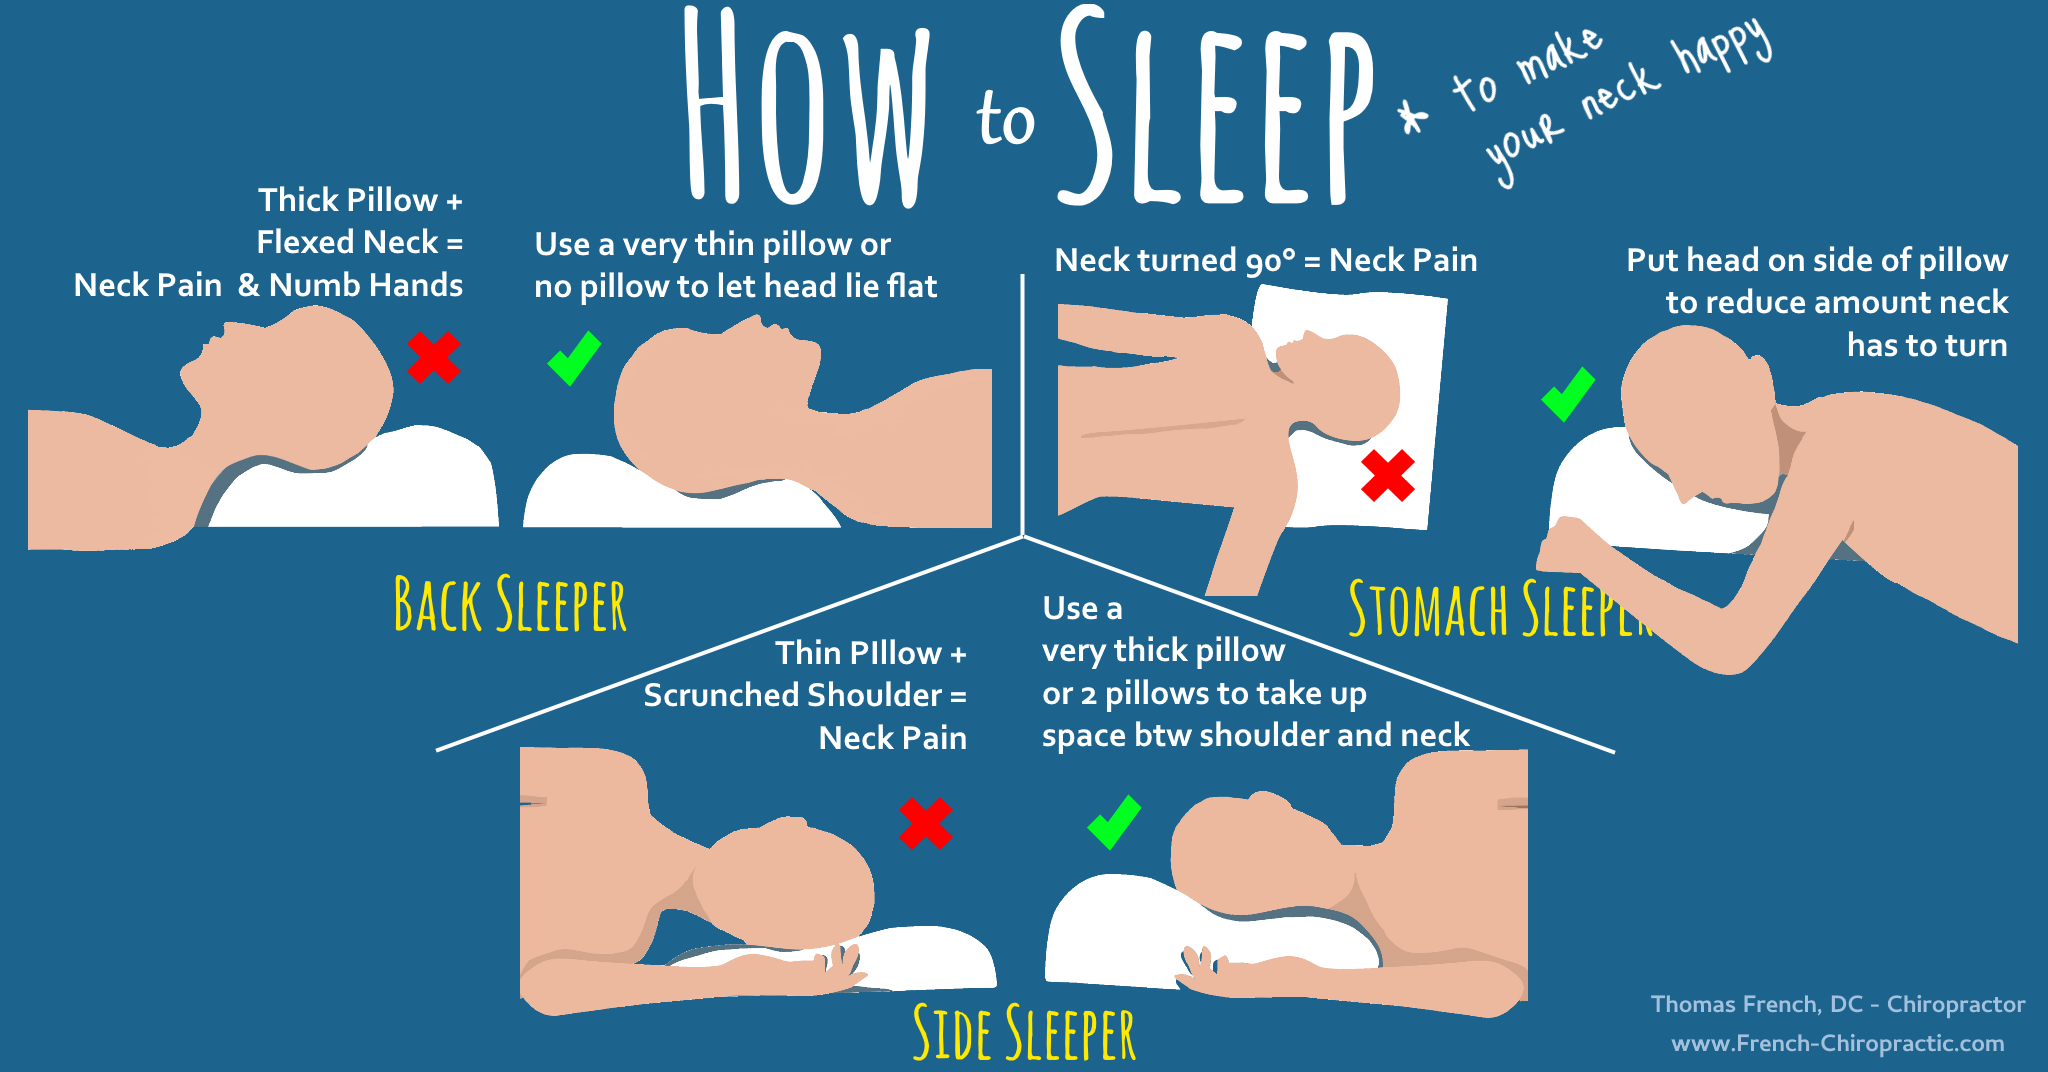 Infographic about How to sleep to reduce neck pain and hand numbness. Shows advice to use a thin pillow for back sleepers, a thick pillow for side sleepers, and to sleep on the edge of a pillow for stomach sleepers.